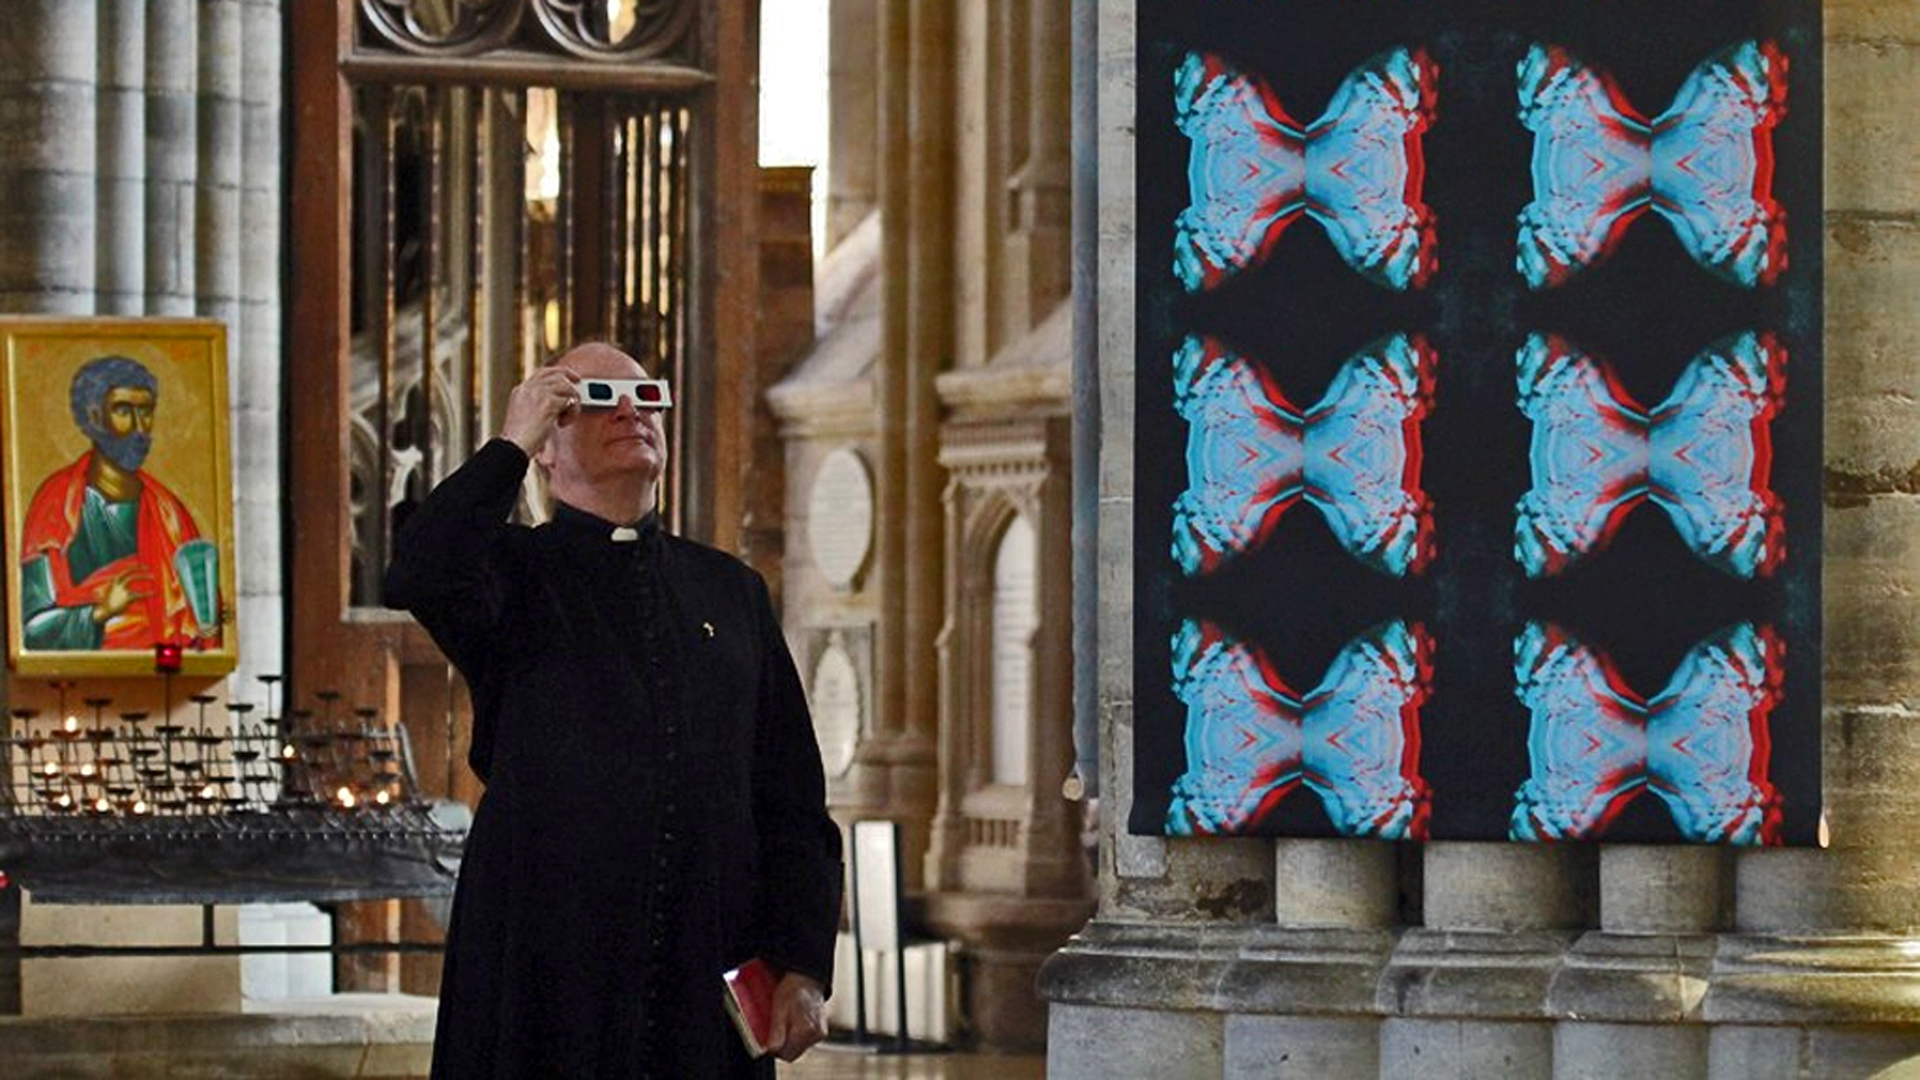 Cathedra 900 3D art banner exhibition Exeter Cathedral nave 2012 / Photo: Mark ware